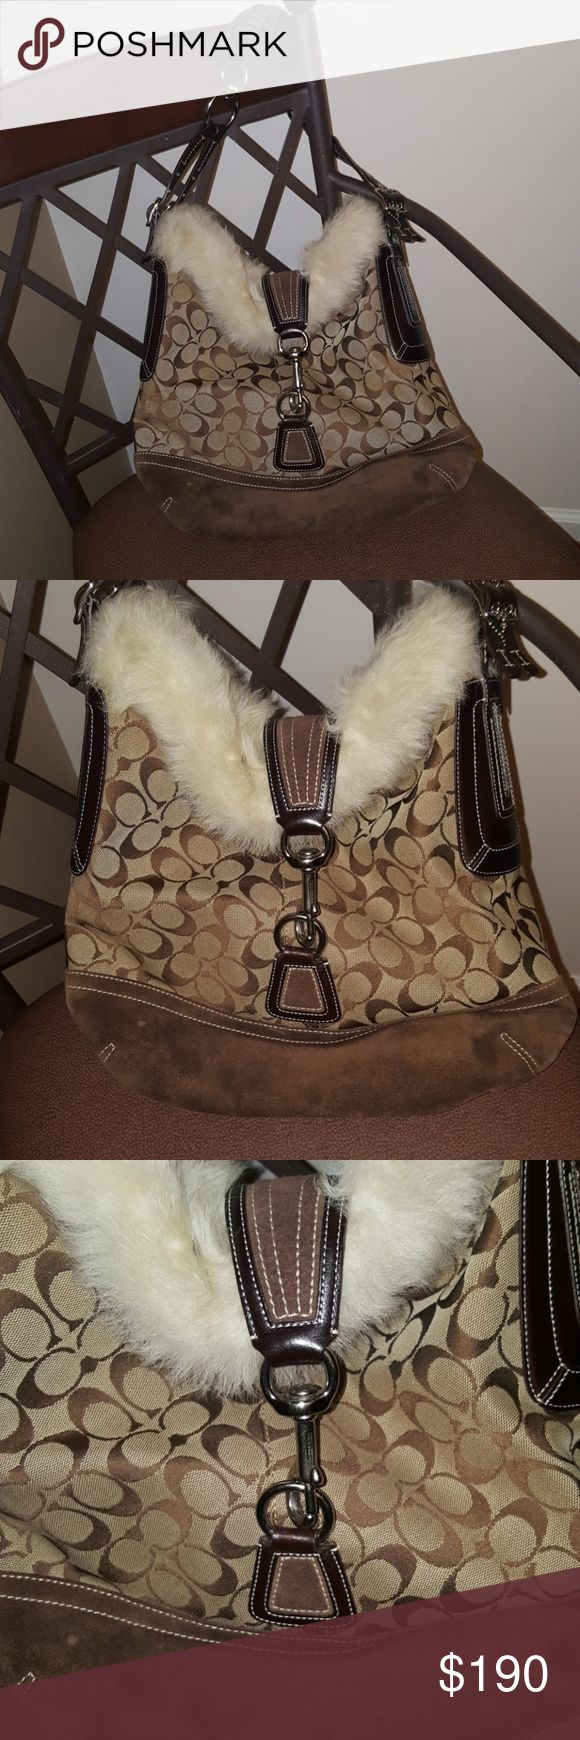 Absolutely fabulous Coach bag Excellent pre-loved condition, brown tones with brown leather strap accented by silver hardware and cream fur at top. Beautiful bag! Bundle for additional discount. Coach Bags